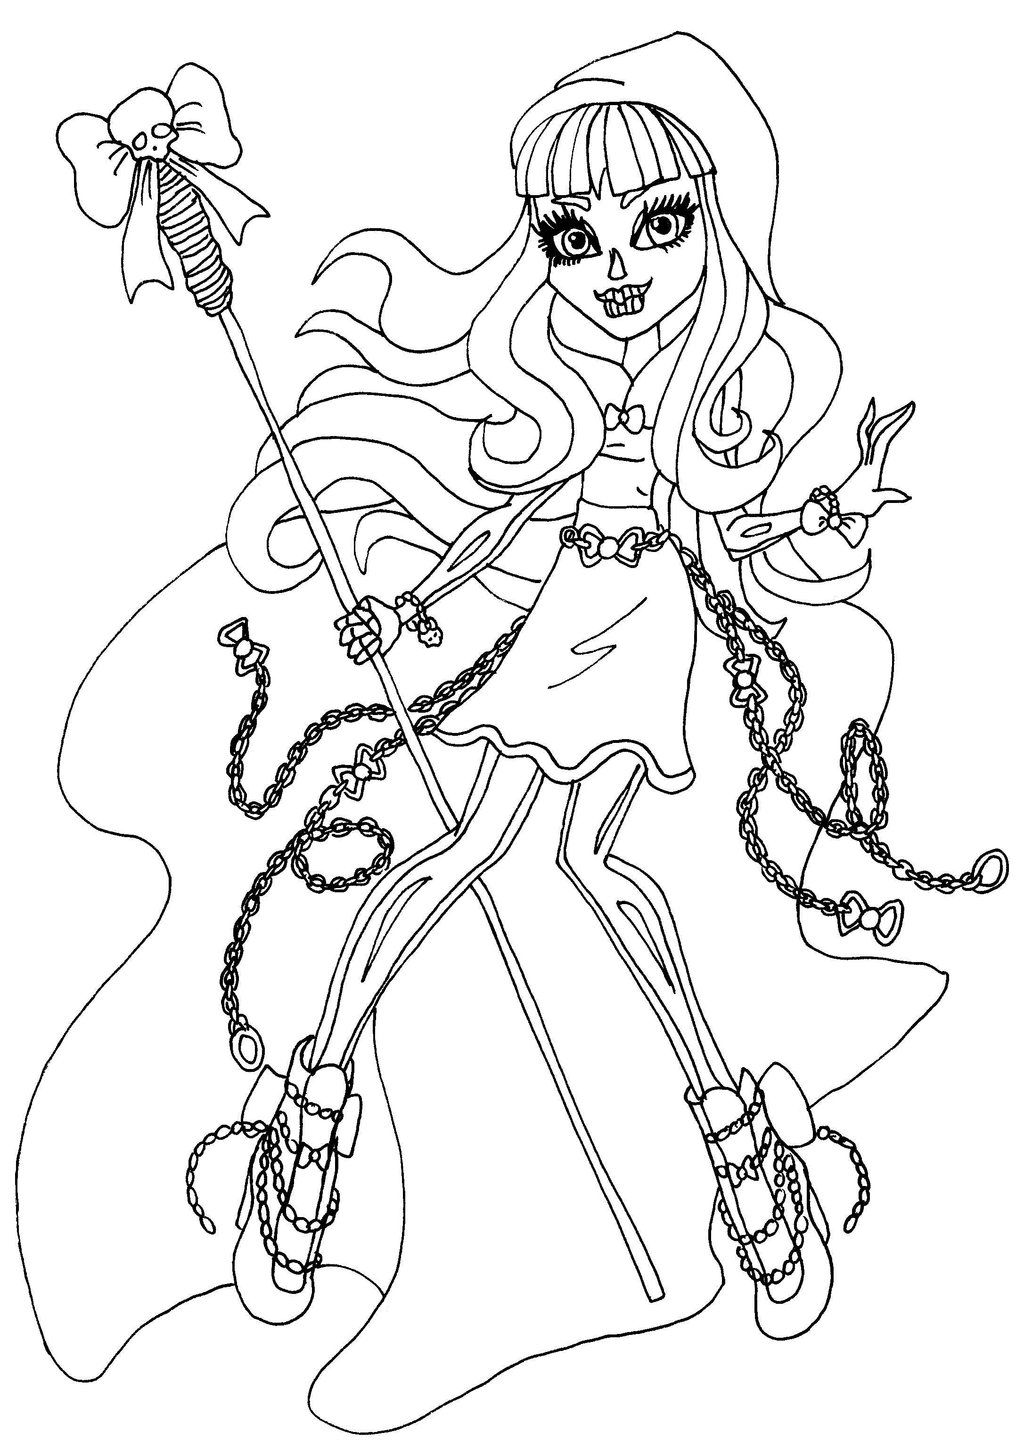 image relating to Printable Monster High Coloring Pages known as 13 monster substantial coloring webpages printable - Print Coloration Craft